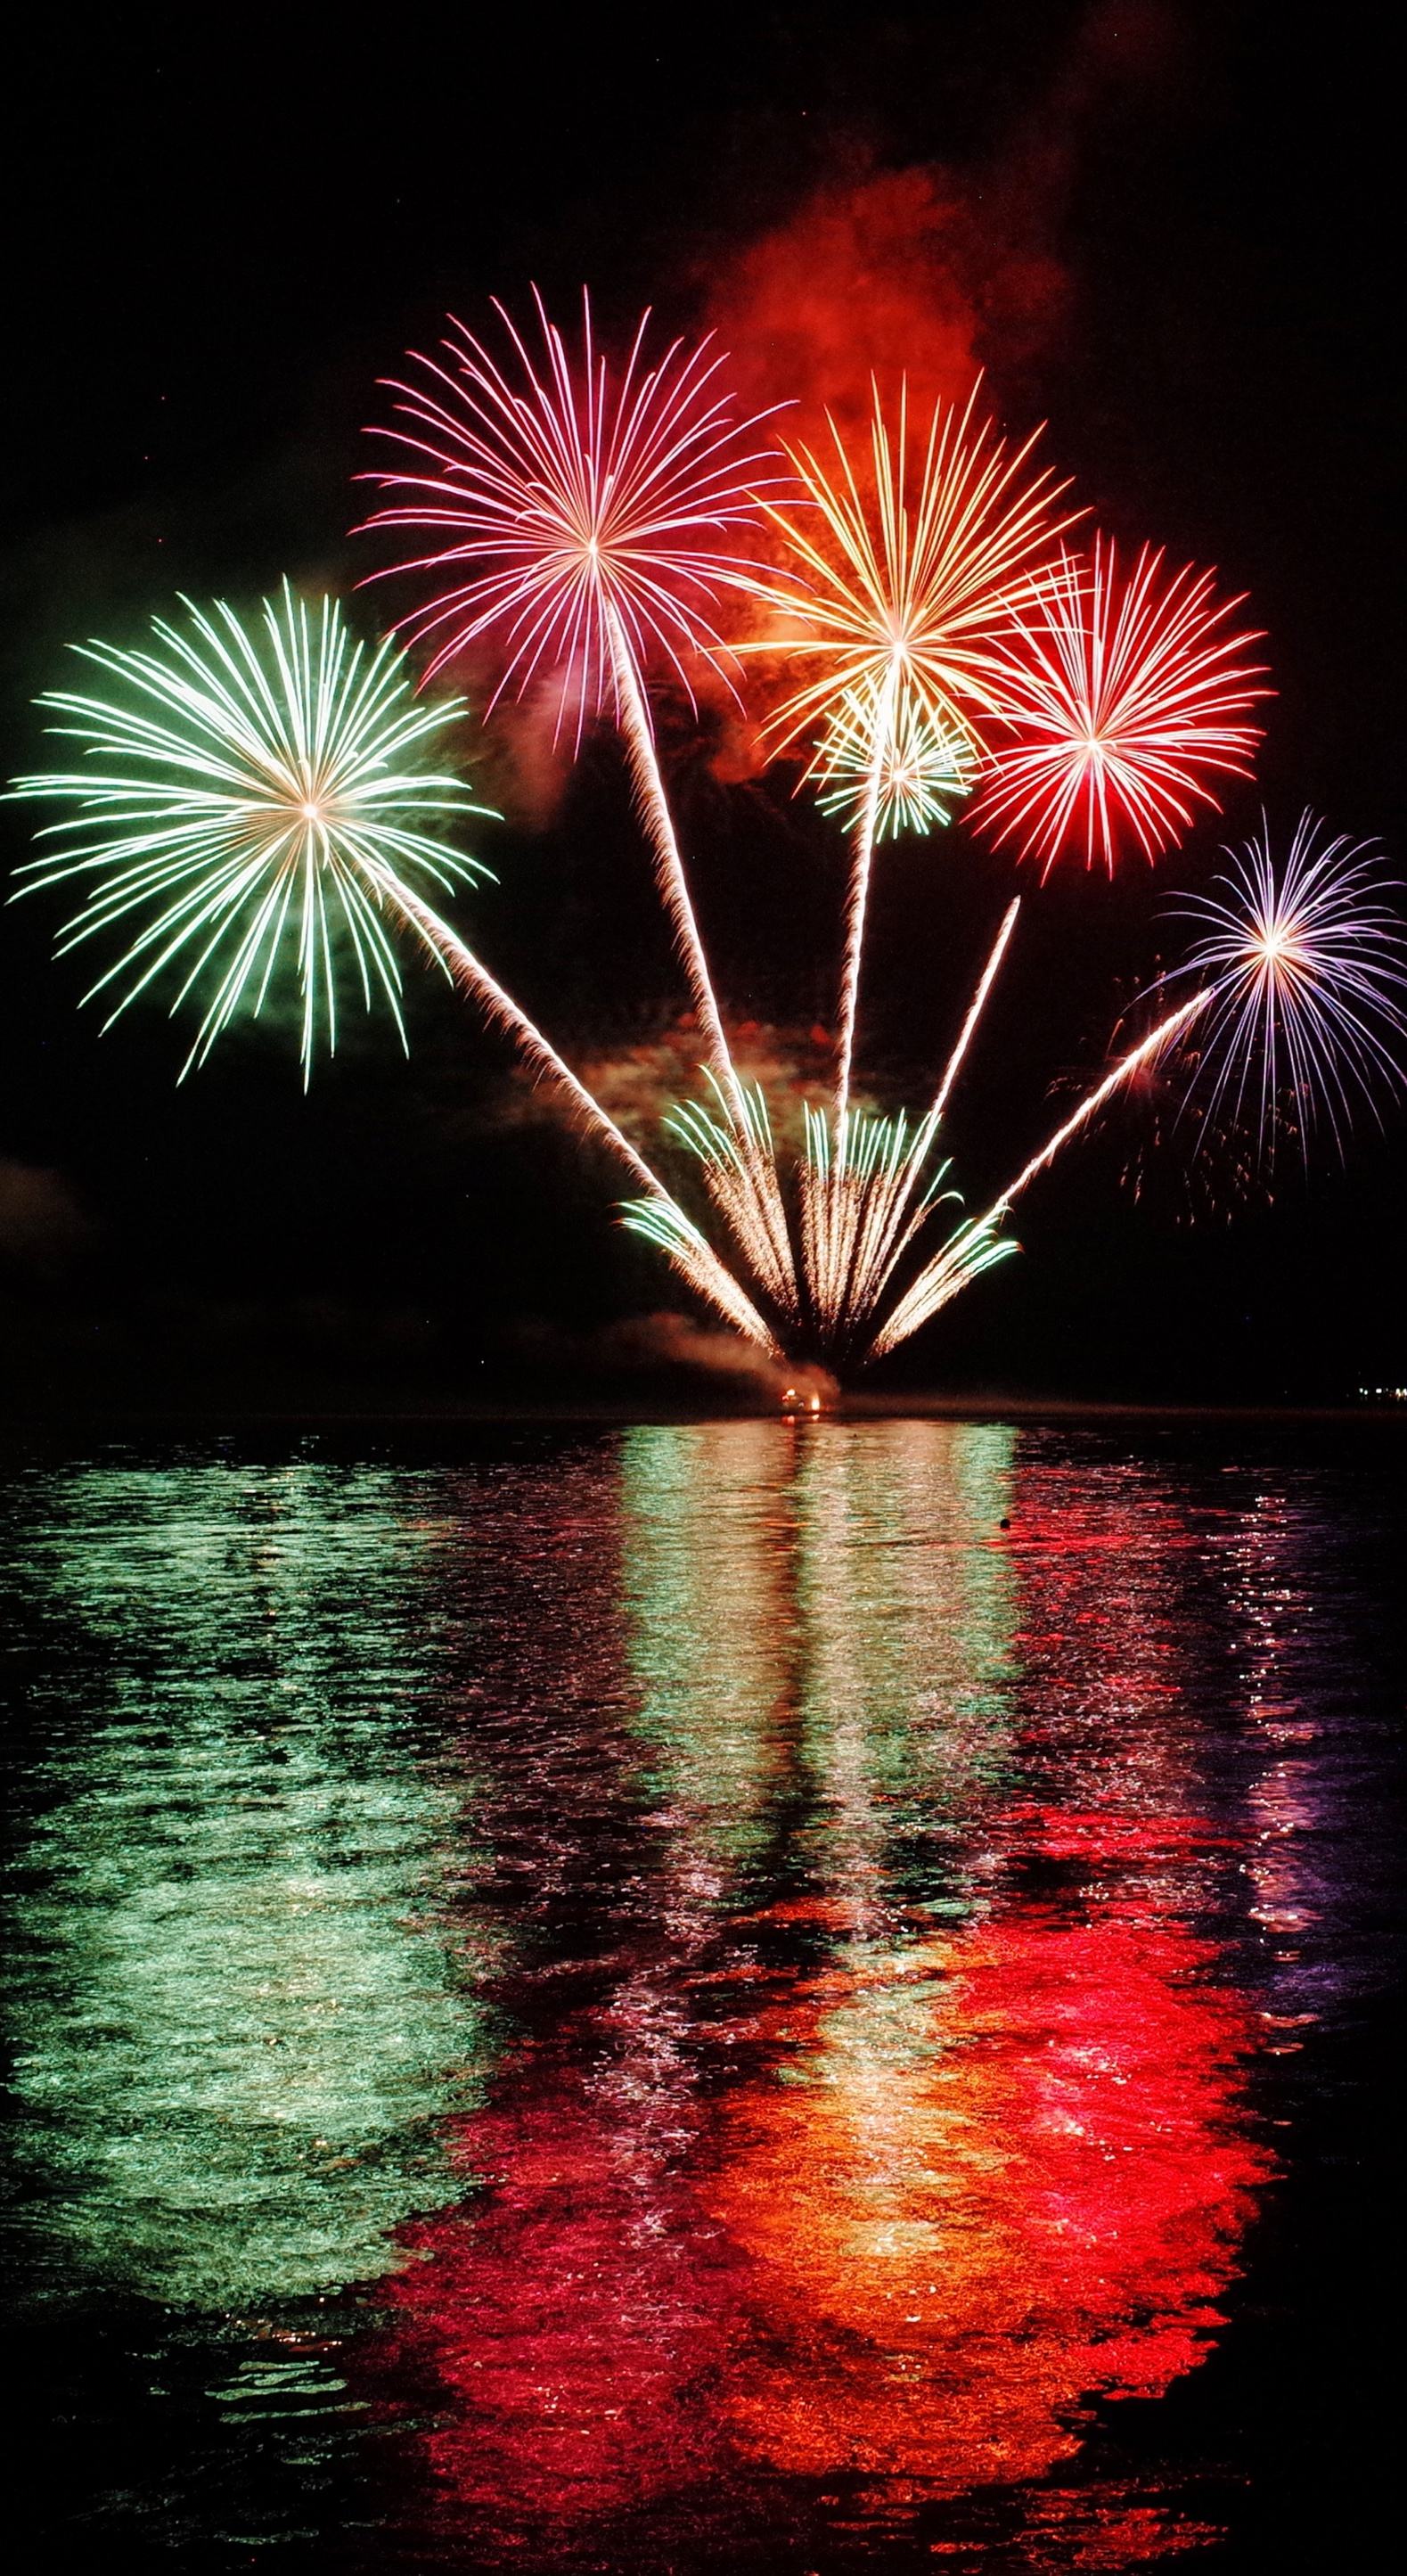 Wallpaper Weekends New Years Eve Fireworks For Ipad